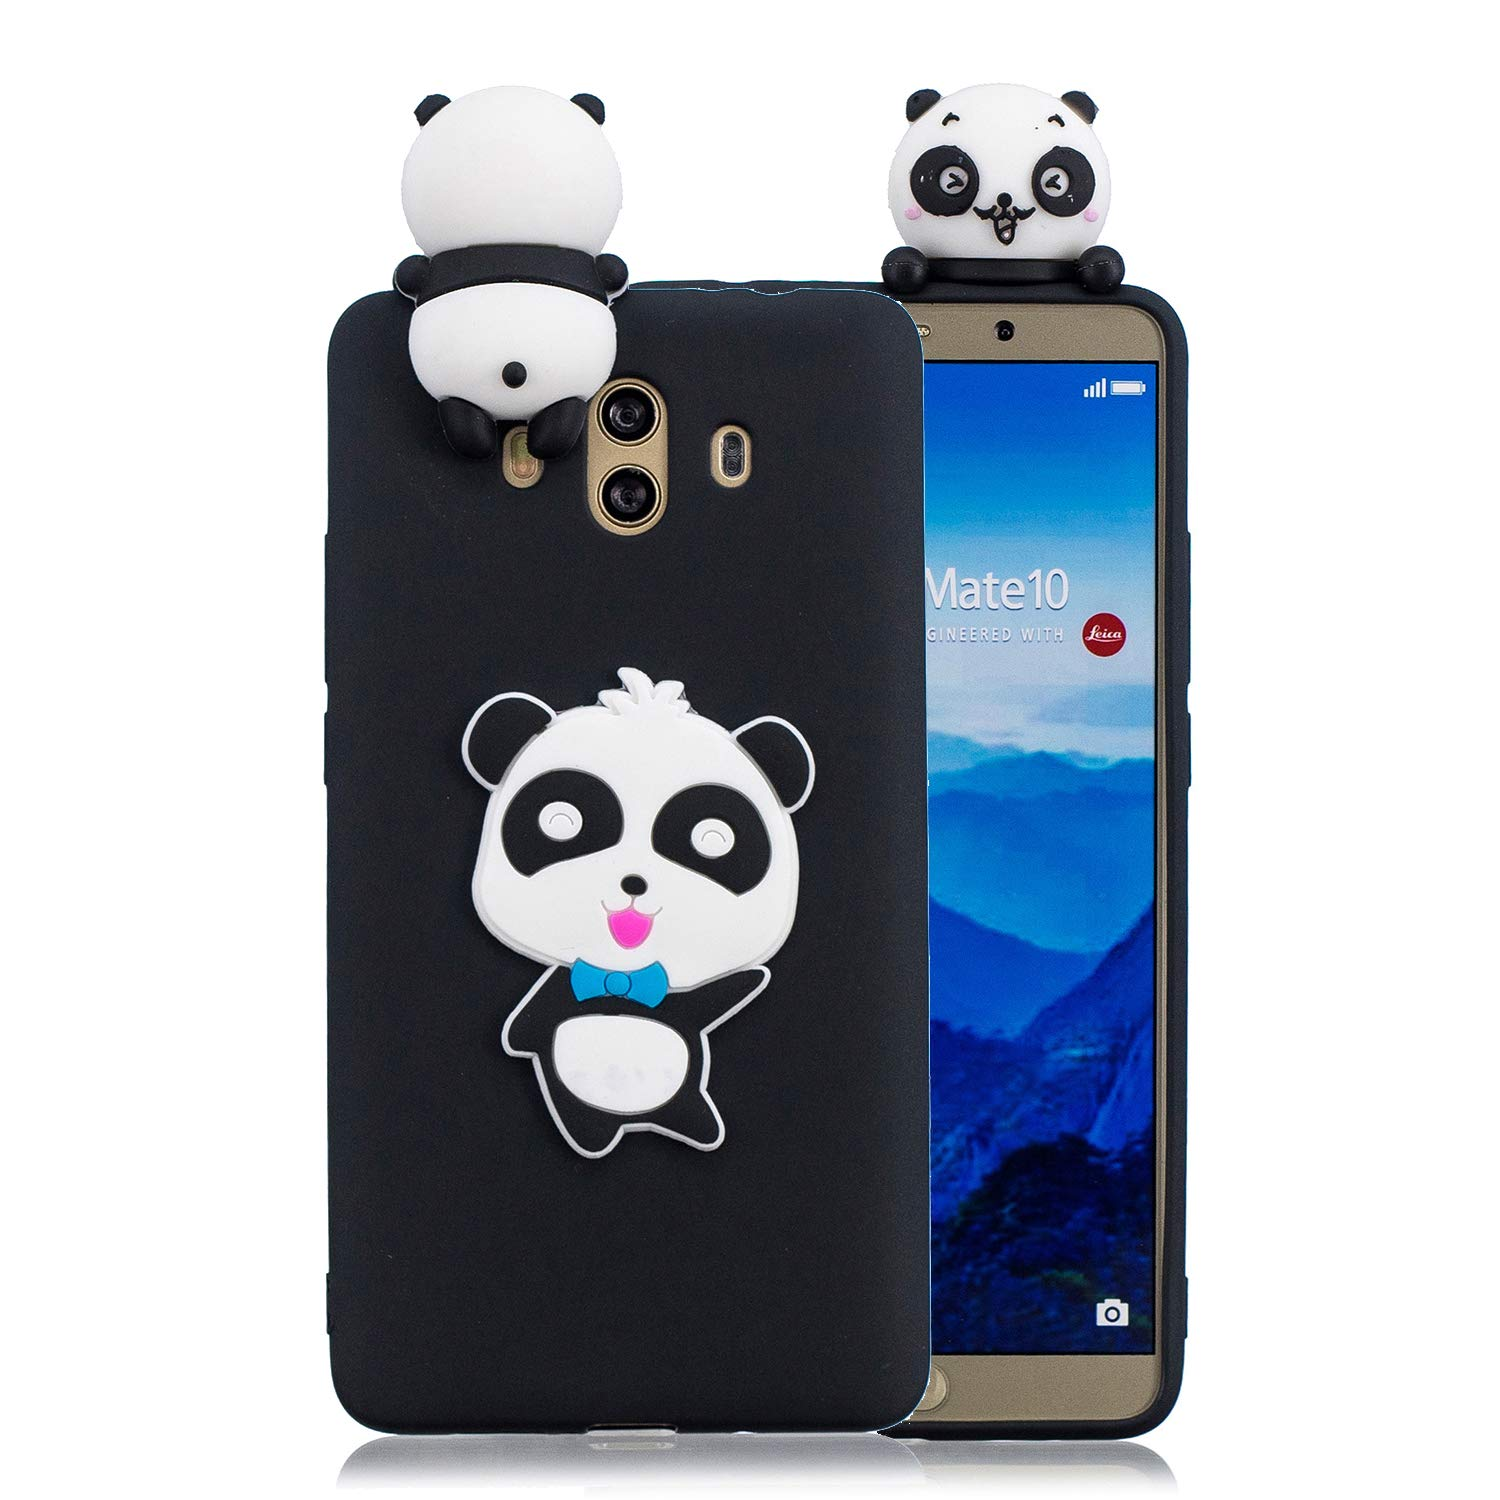 for Huawei Mate 10 Silicone Case with Screen Protector,QFFUN 3D Cartoon [Panda] Pattern Design Soft Flexible Slim Fit Gel Rubber Cover,Shockproof ...